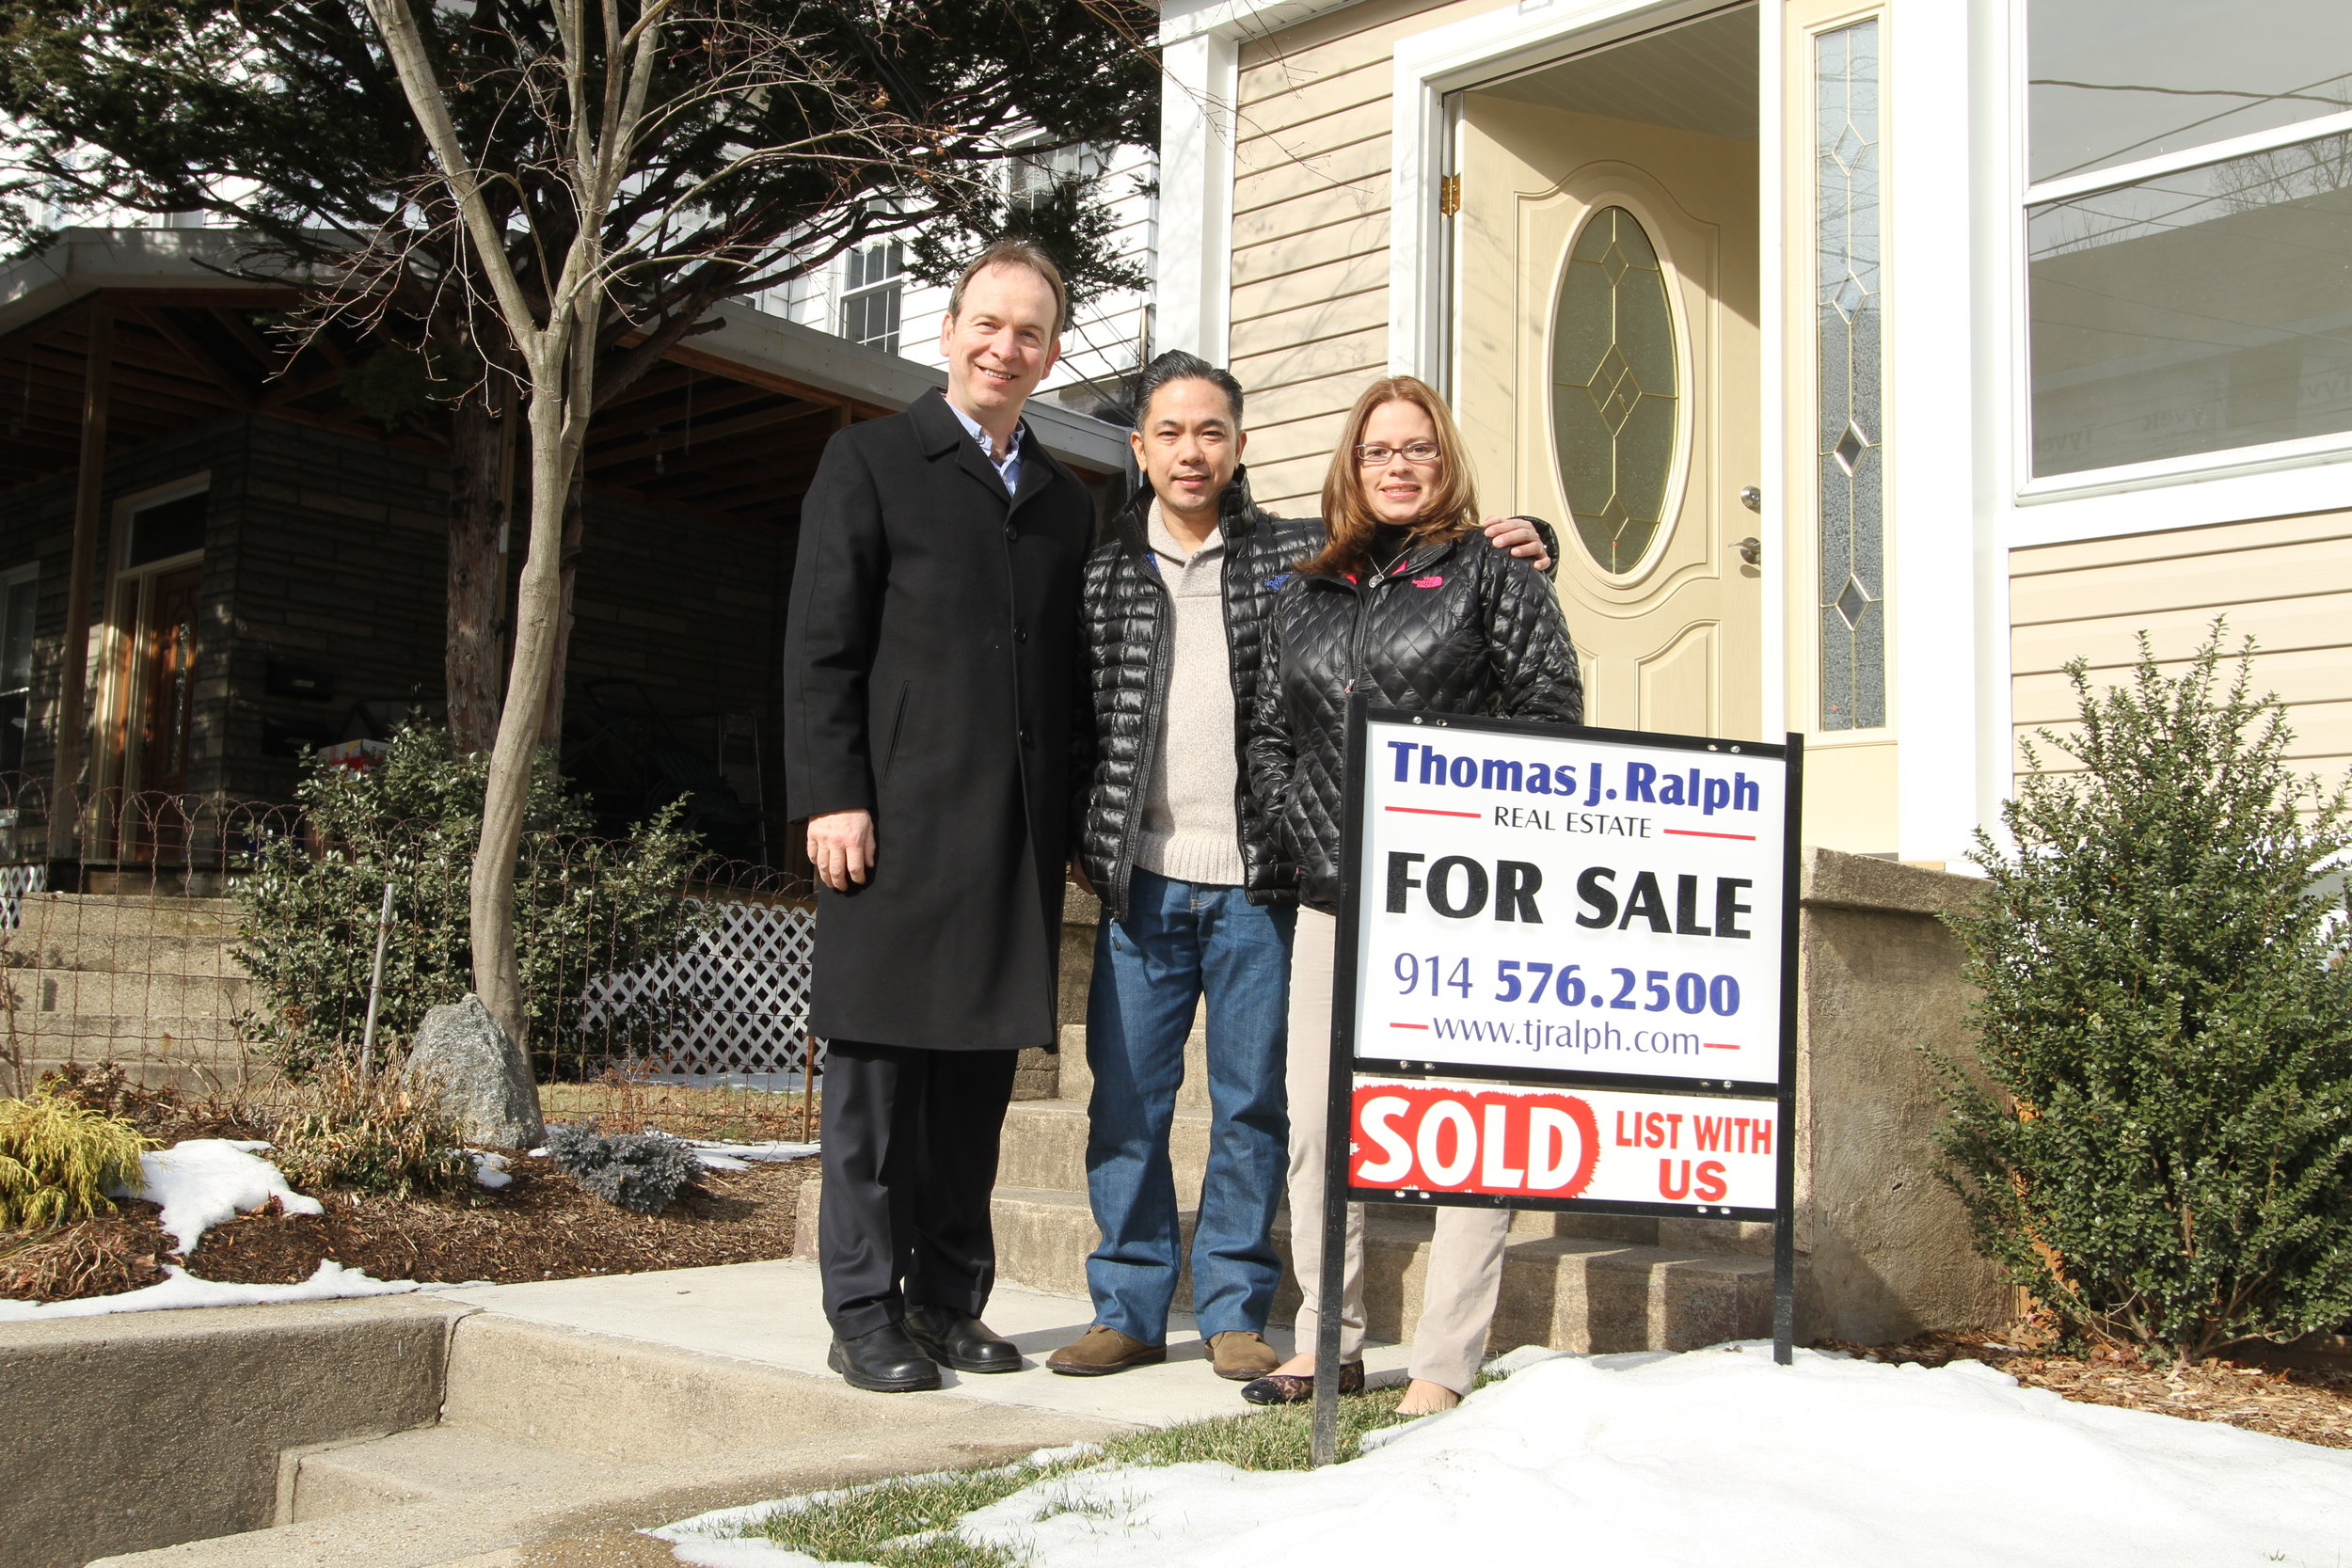 Listed & sold by tom